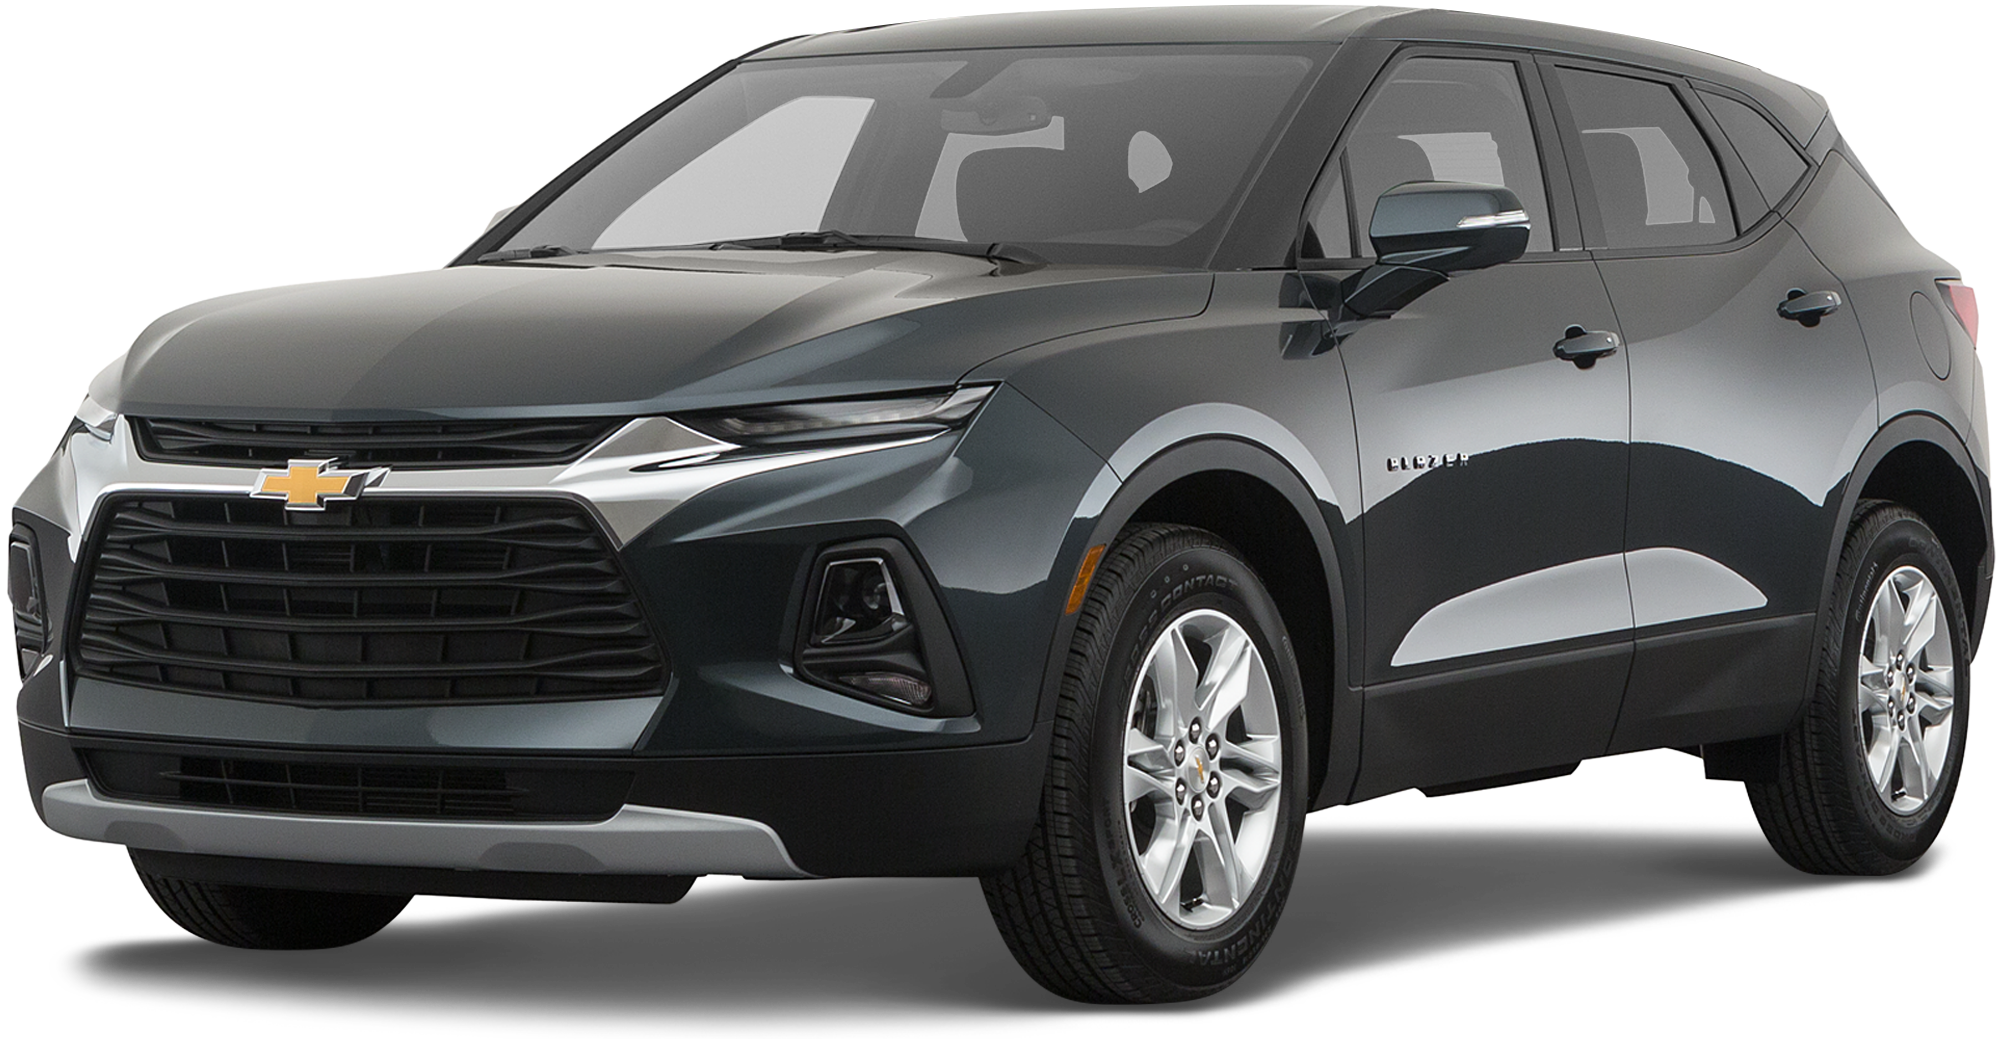 2020 chevrolet blazer incentives, specials & offers in